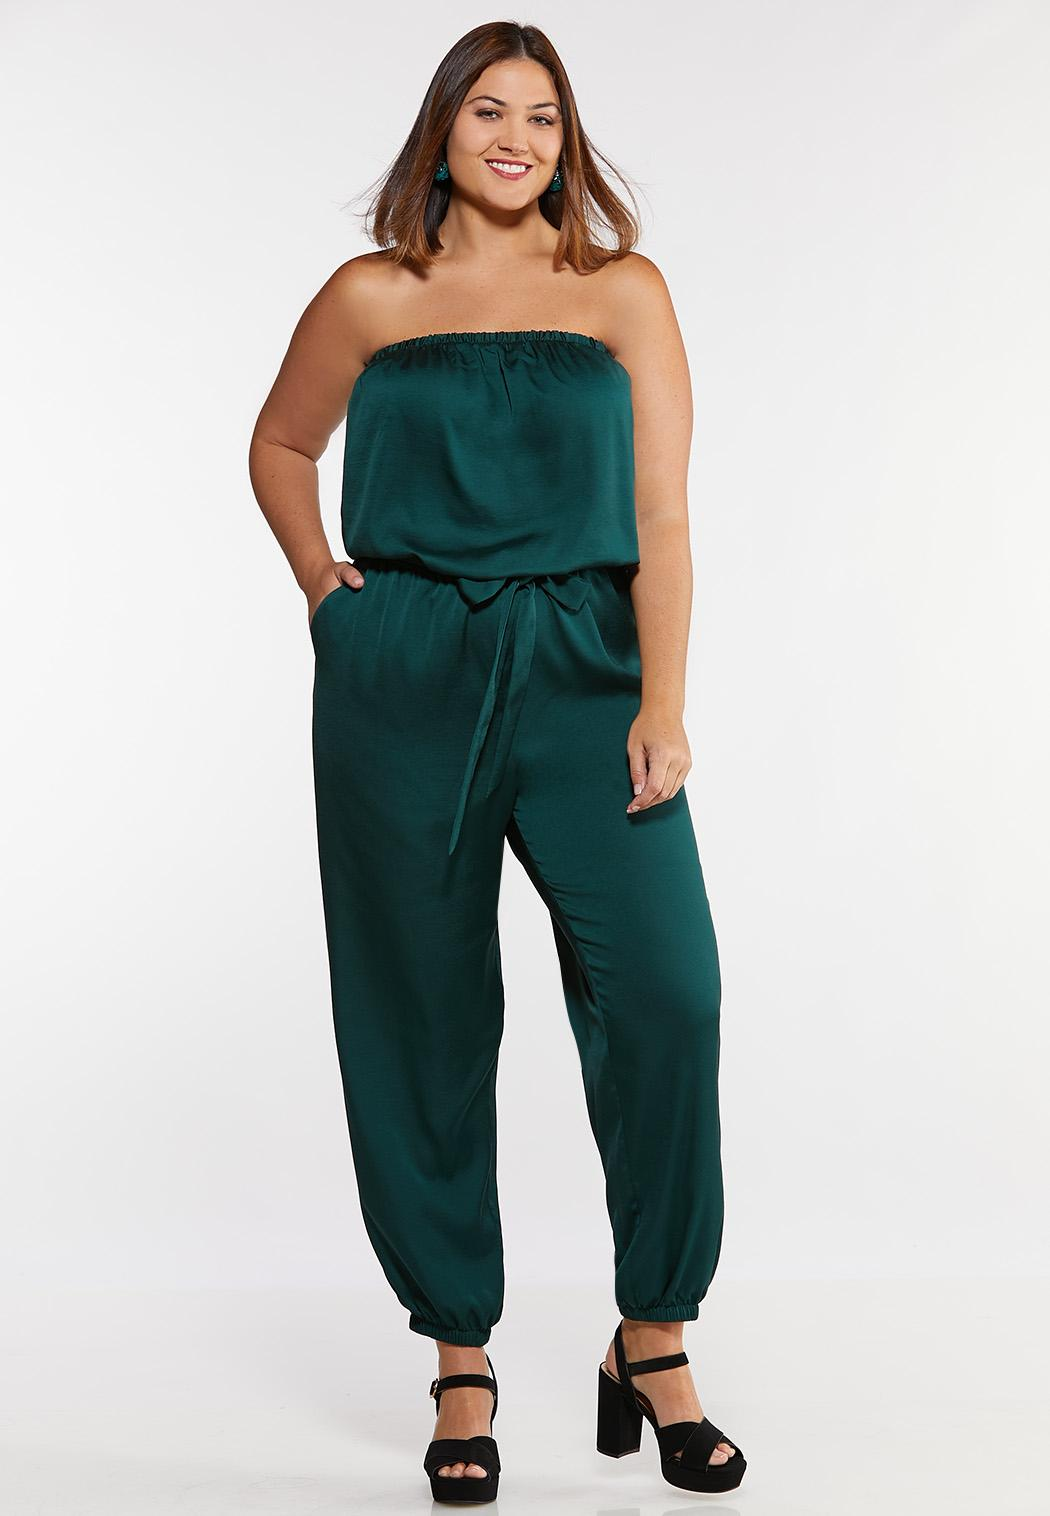 Plus Size Satiny Green Jumpsuit Jumpsuits Cato Fashions